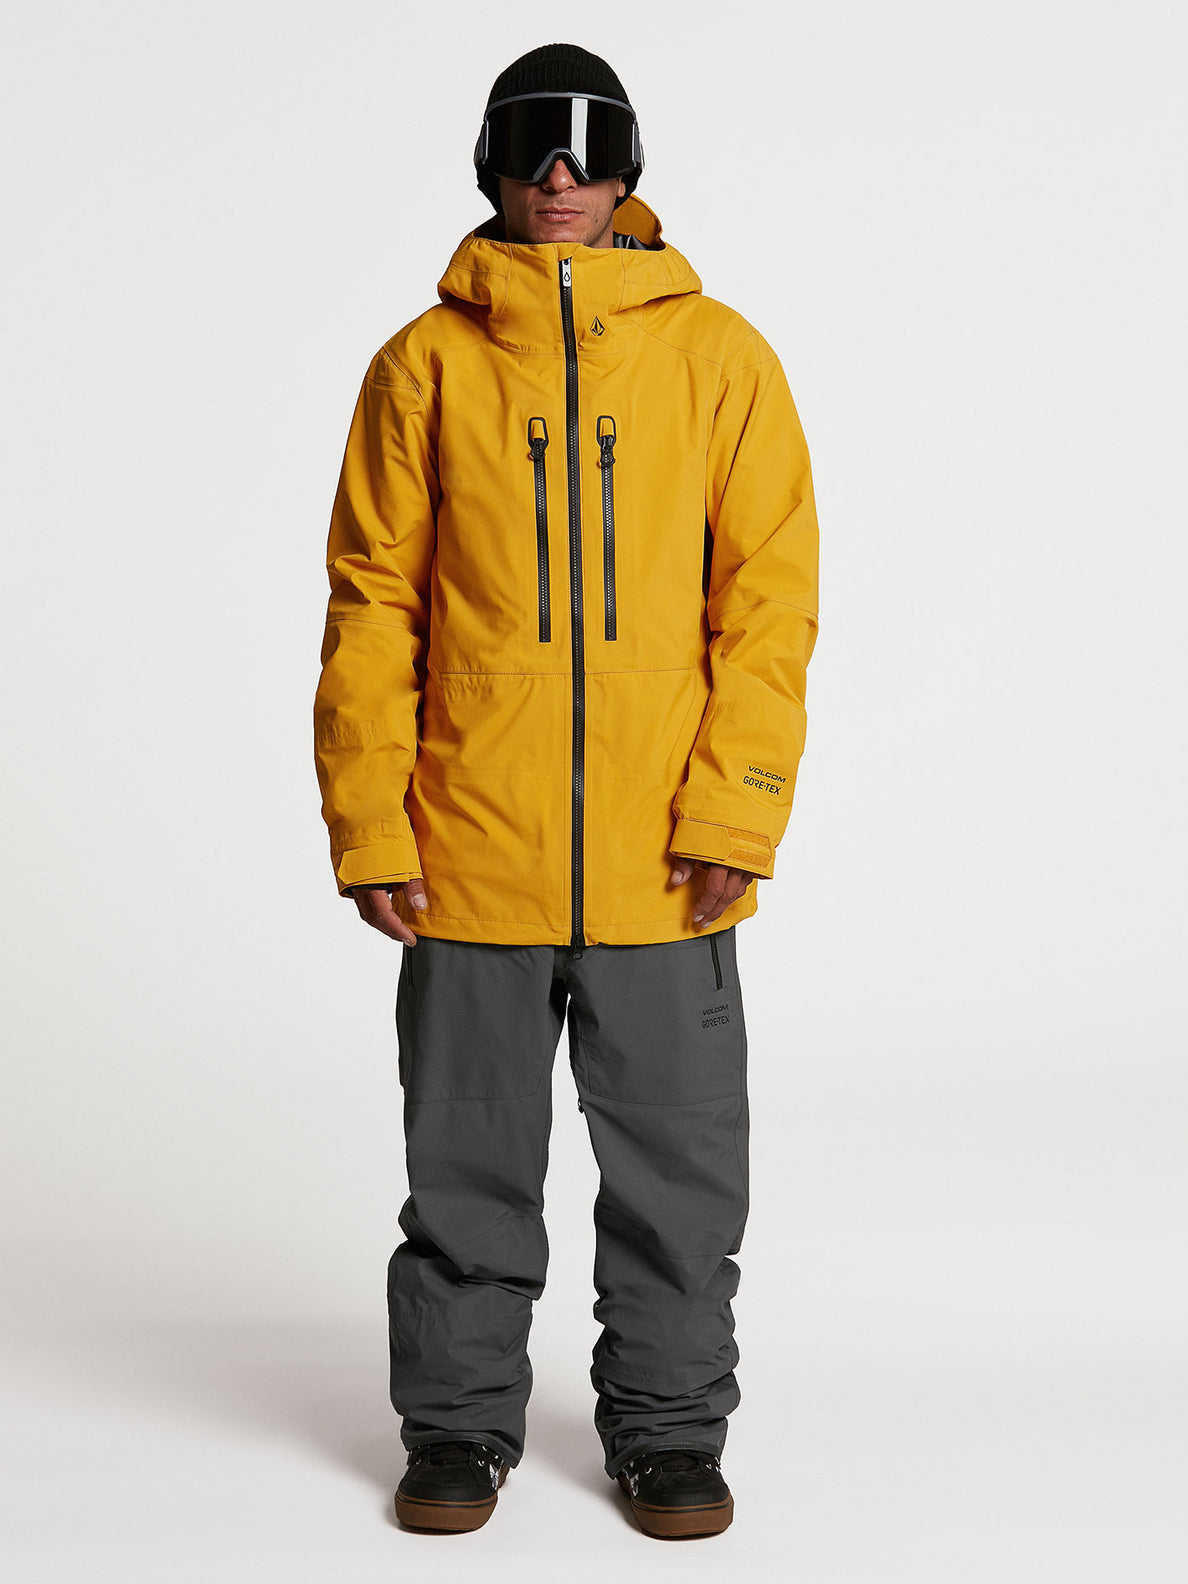 Mens Guide GORE-TEX Jacket - Resin Gold (G0652101_RSG) [03]